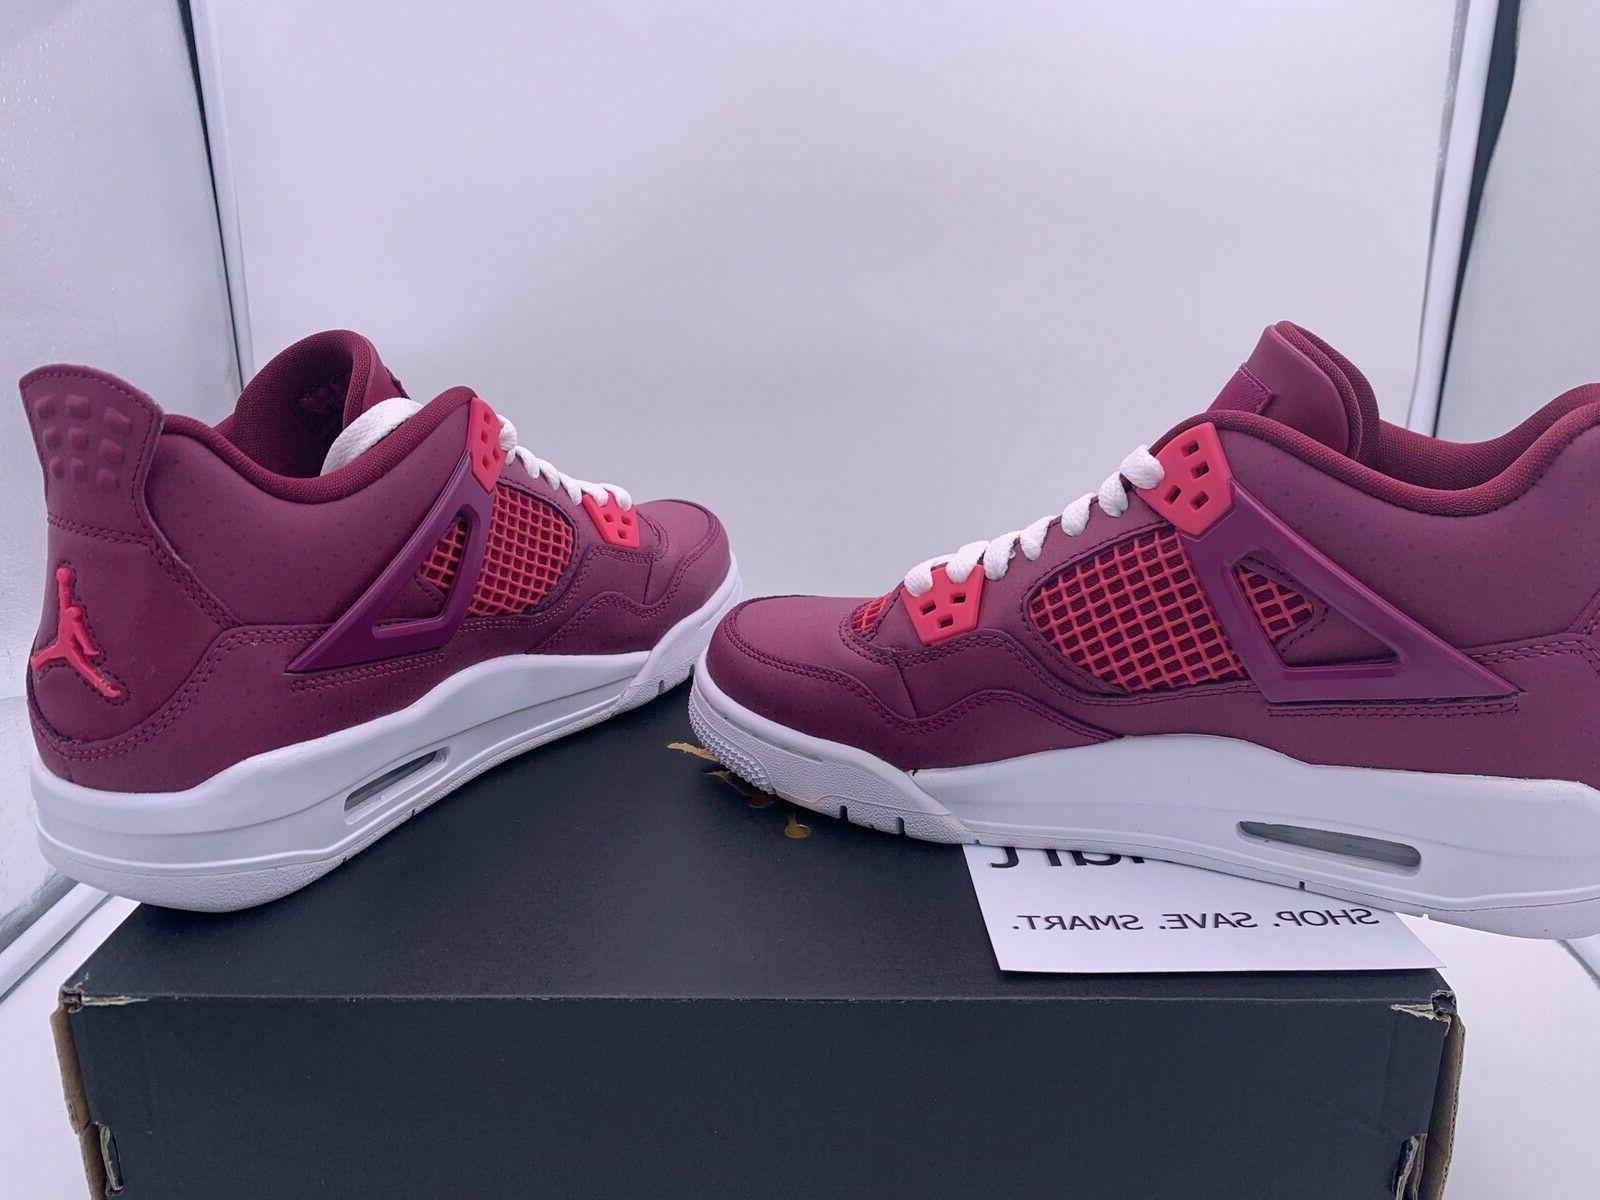 NIB Air Jordan GS Berry Shoes